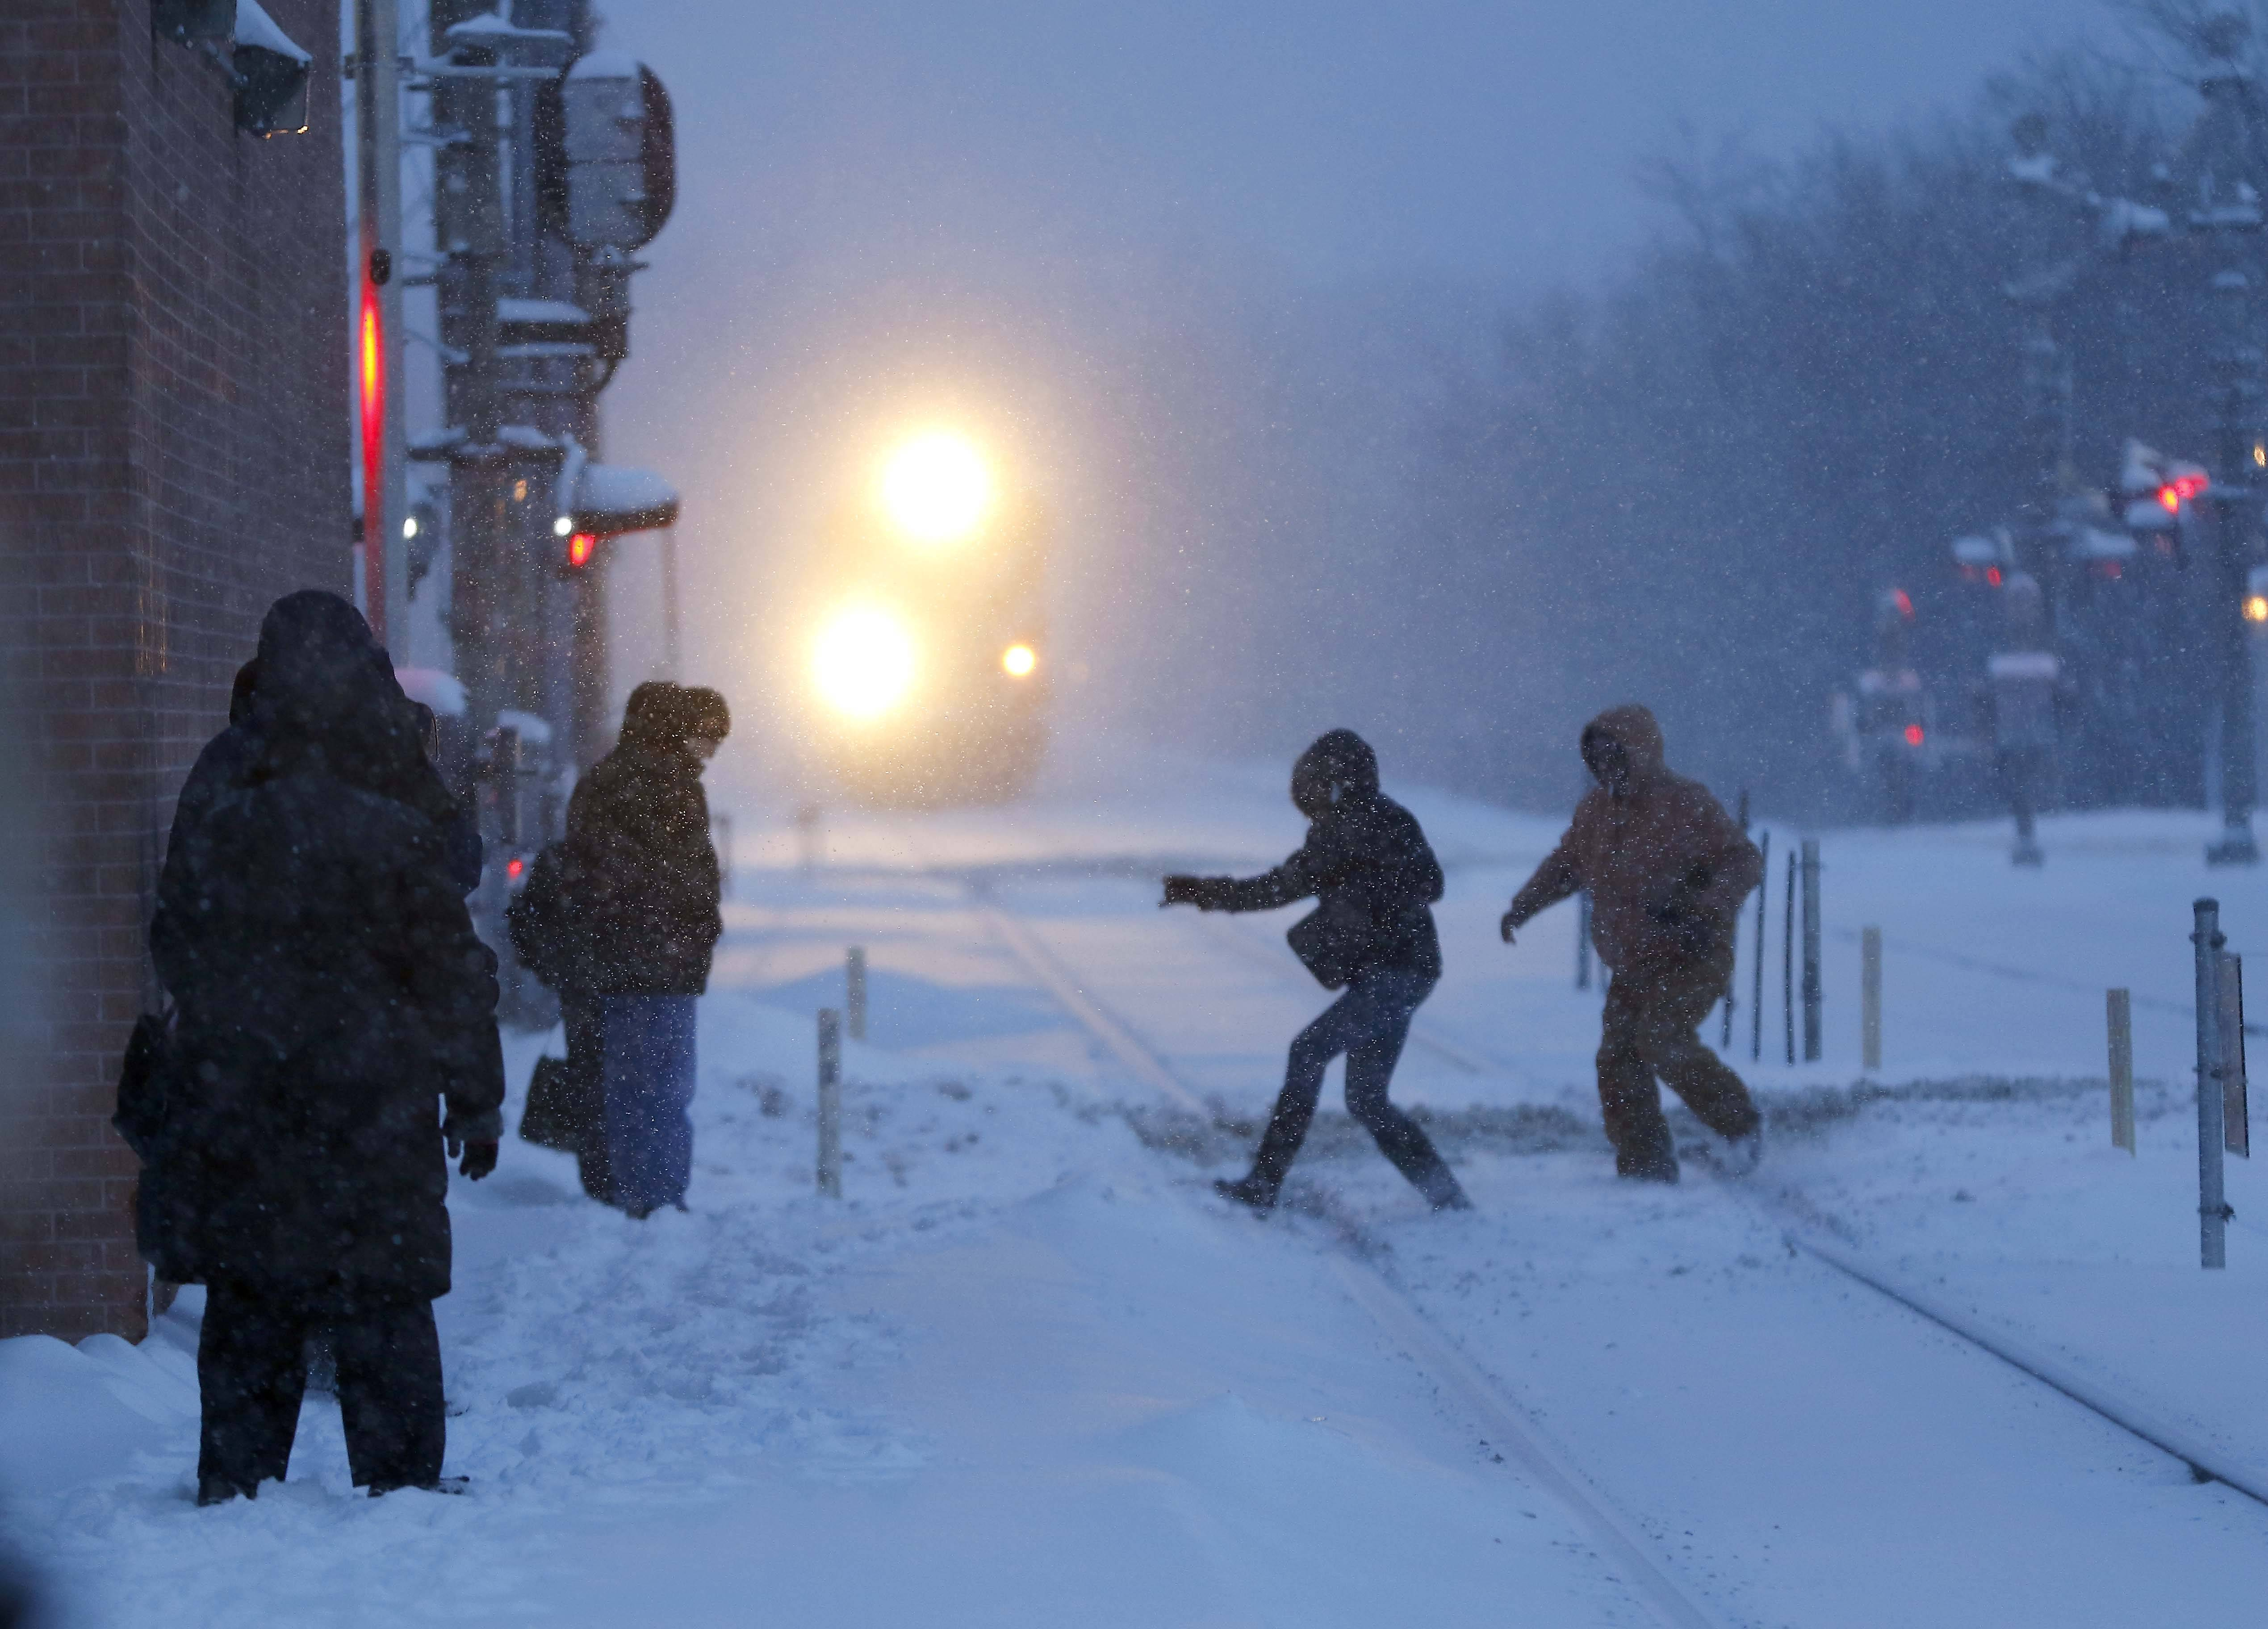 It was a bit risky for some commuters Friday morning as they hustled to make their train at the Elgin Metra station.